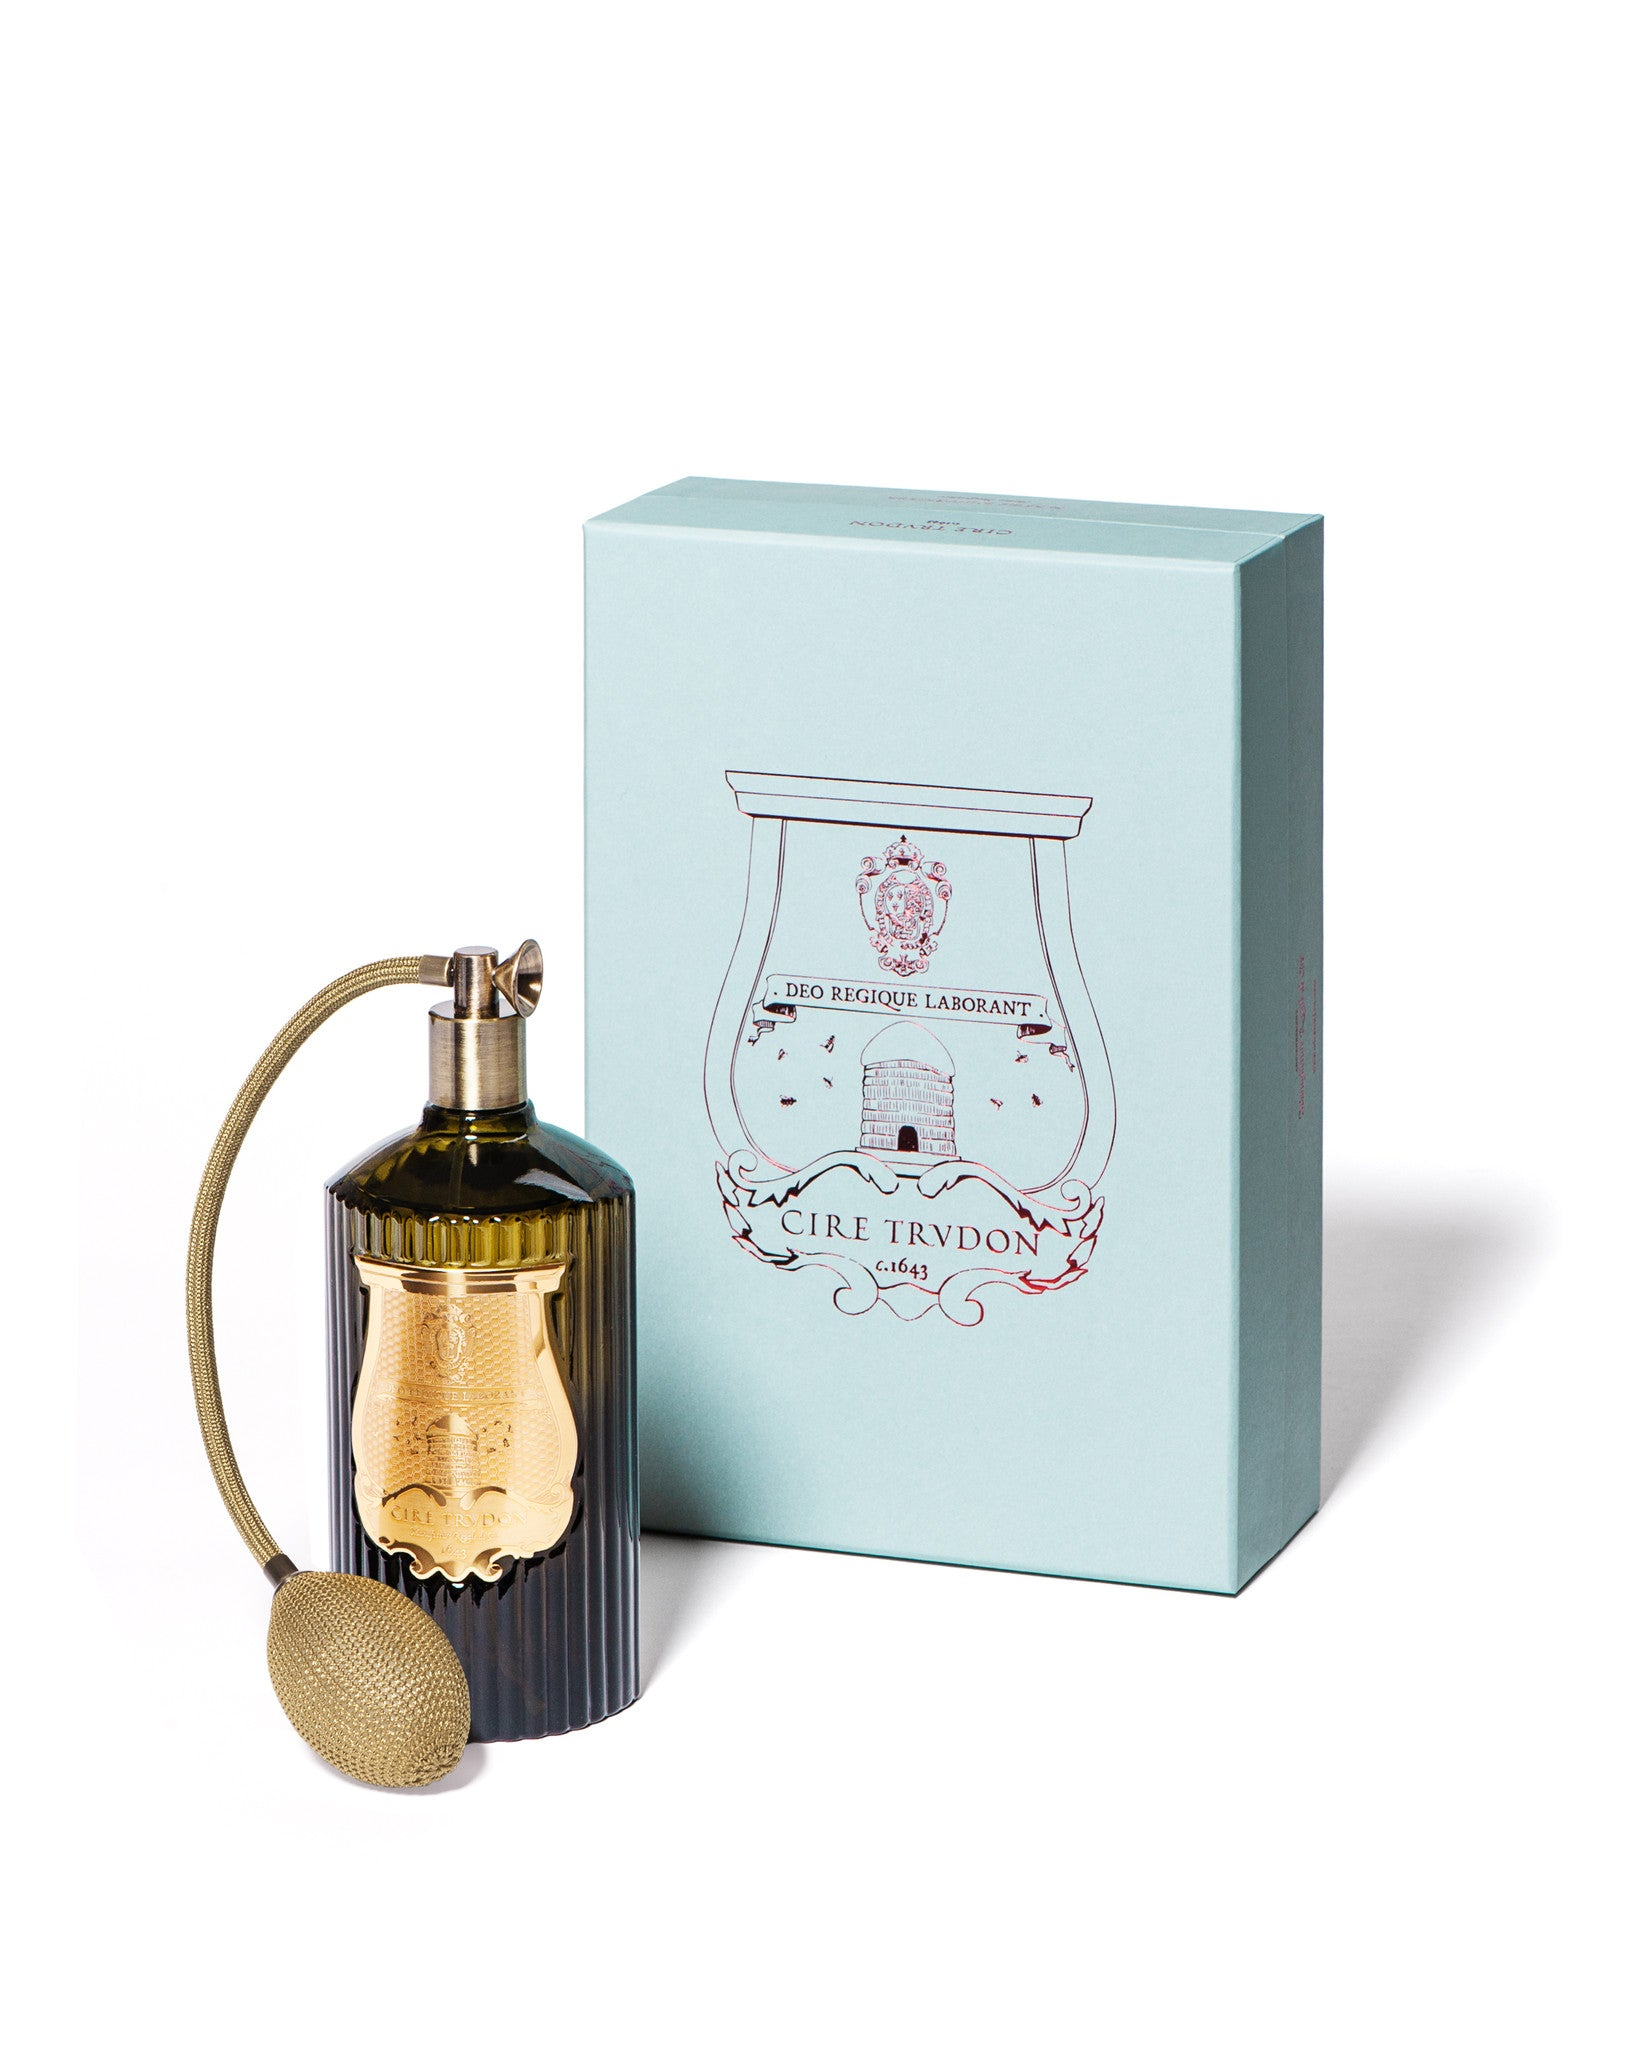 Cire Trudon Odalisque Room Spray